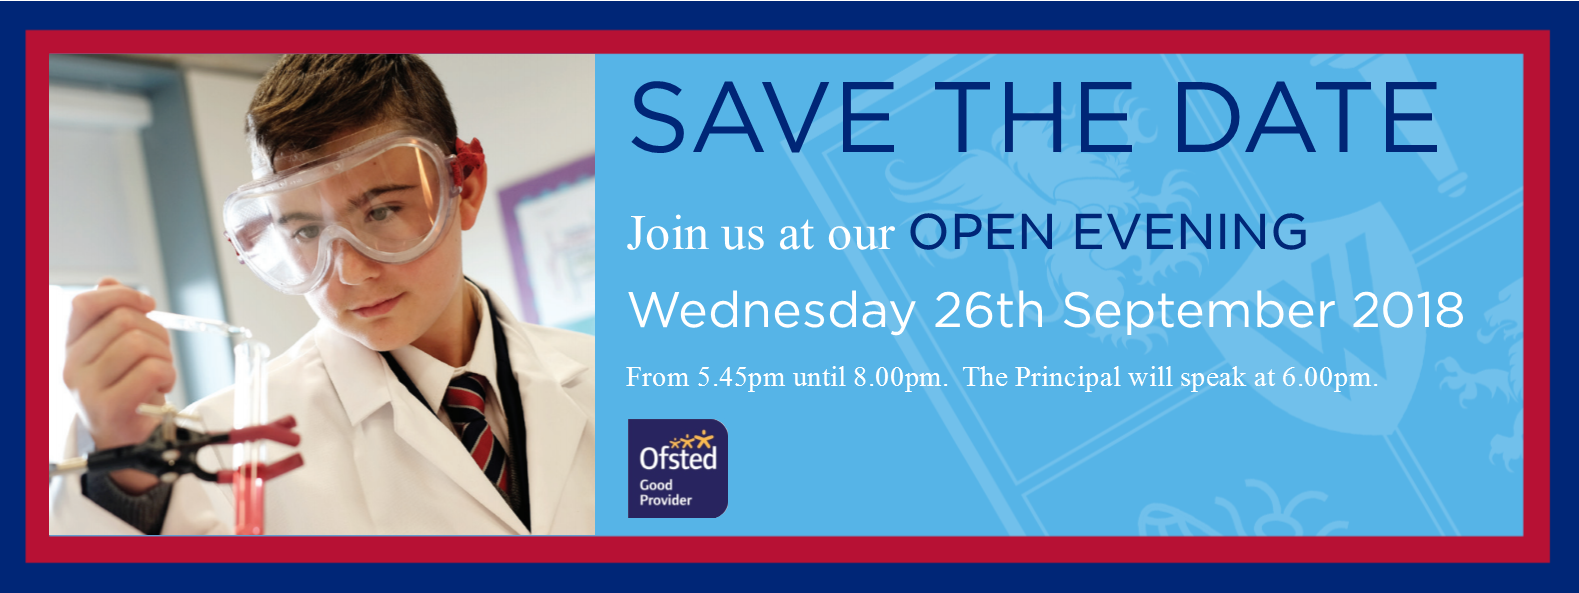 Open Evening 2018 web banner.png